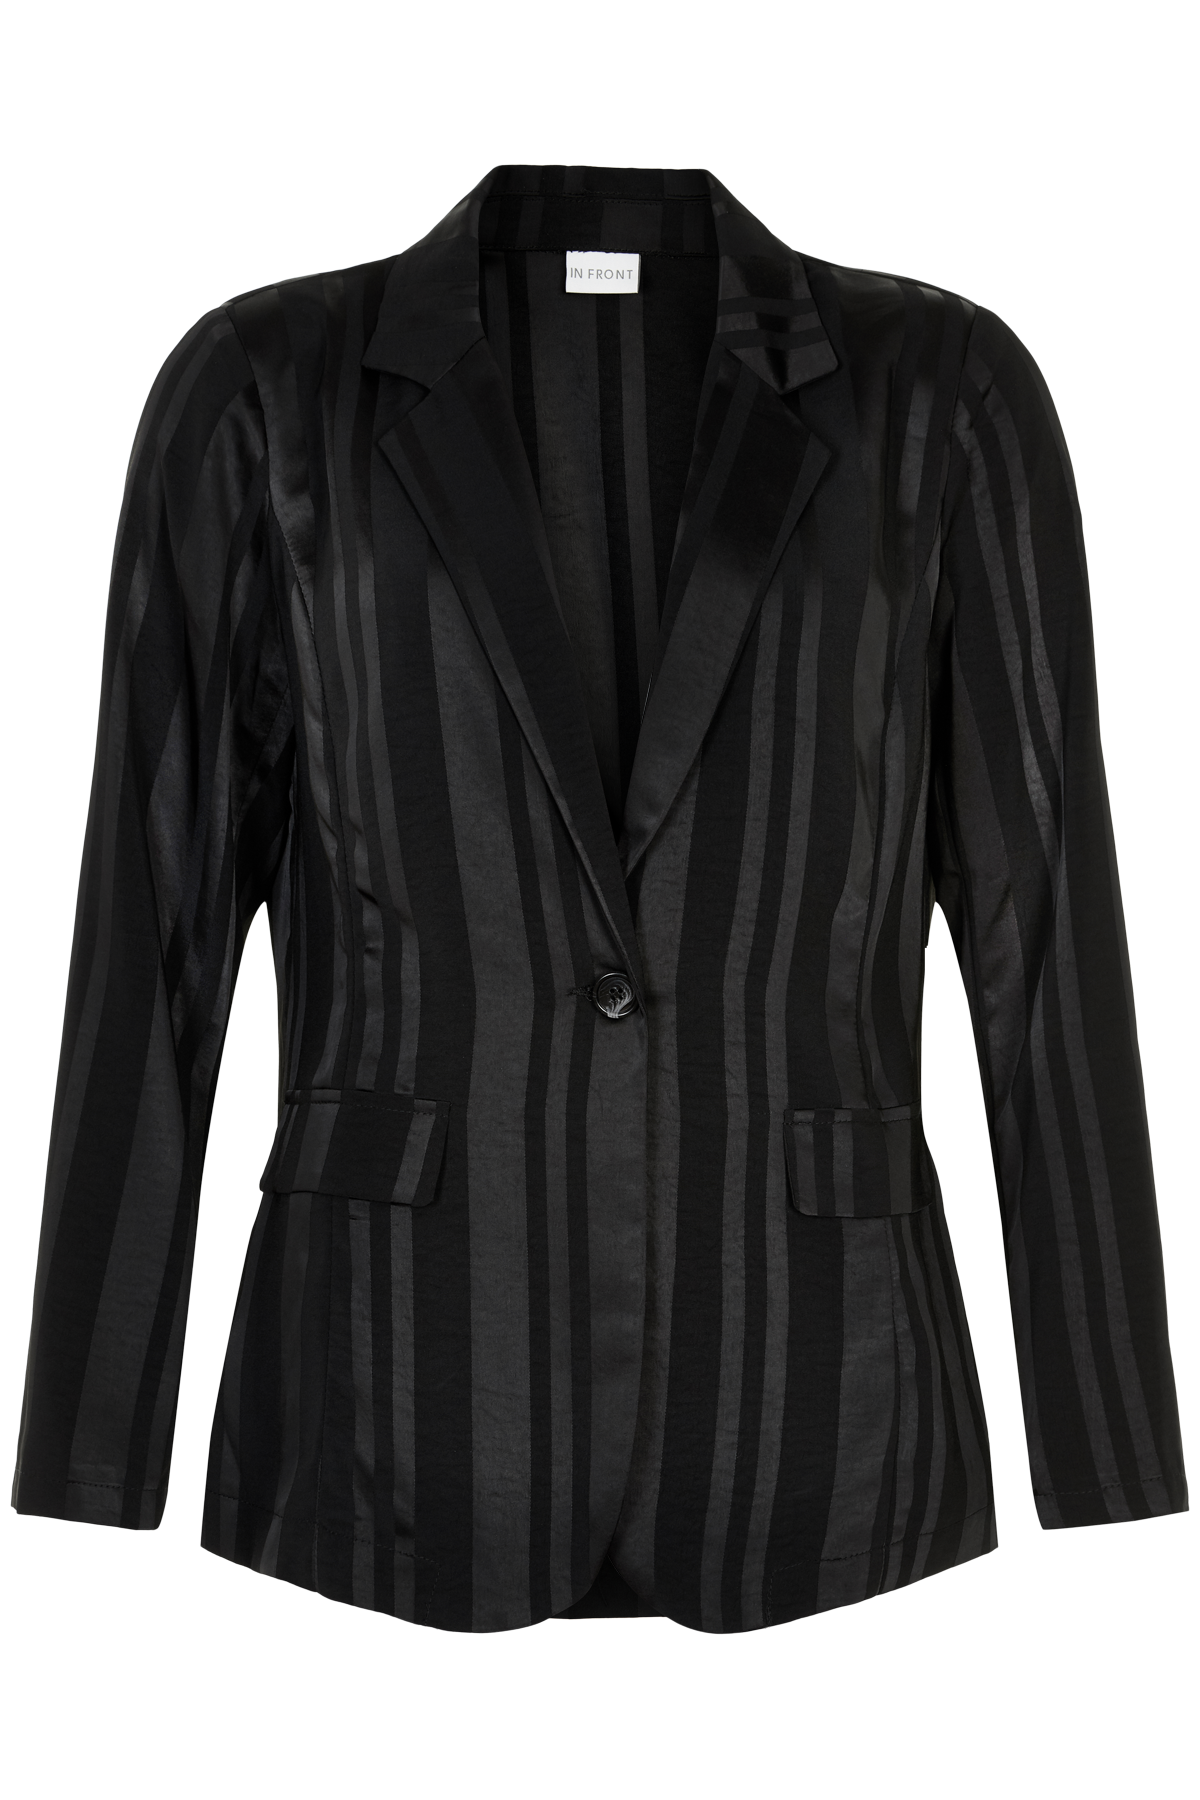 Image of   IN FRONT MIRA BLAZER 13572 (Black 999, XXL)